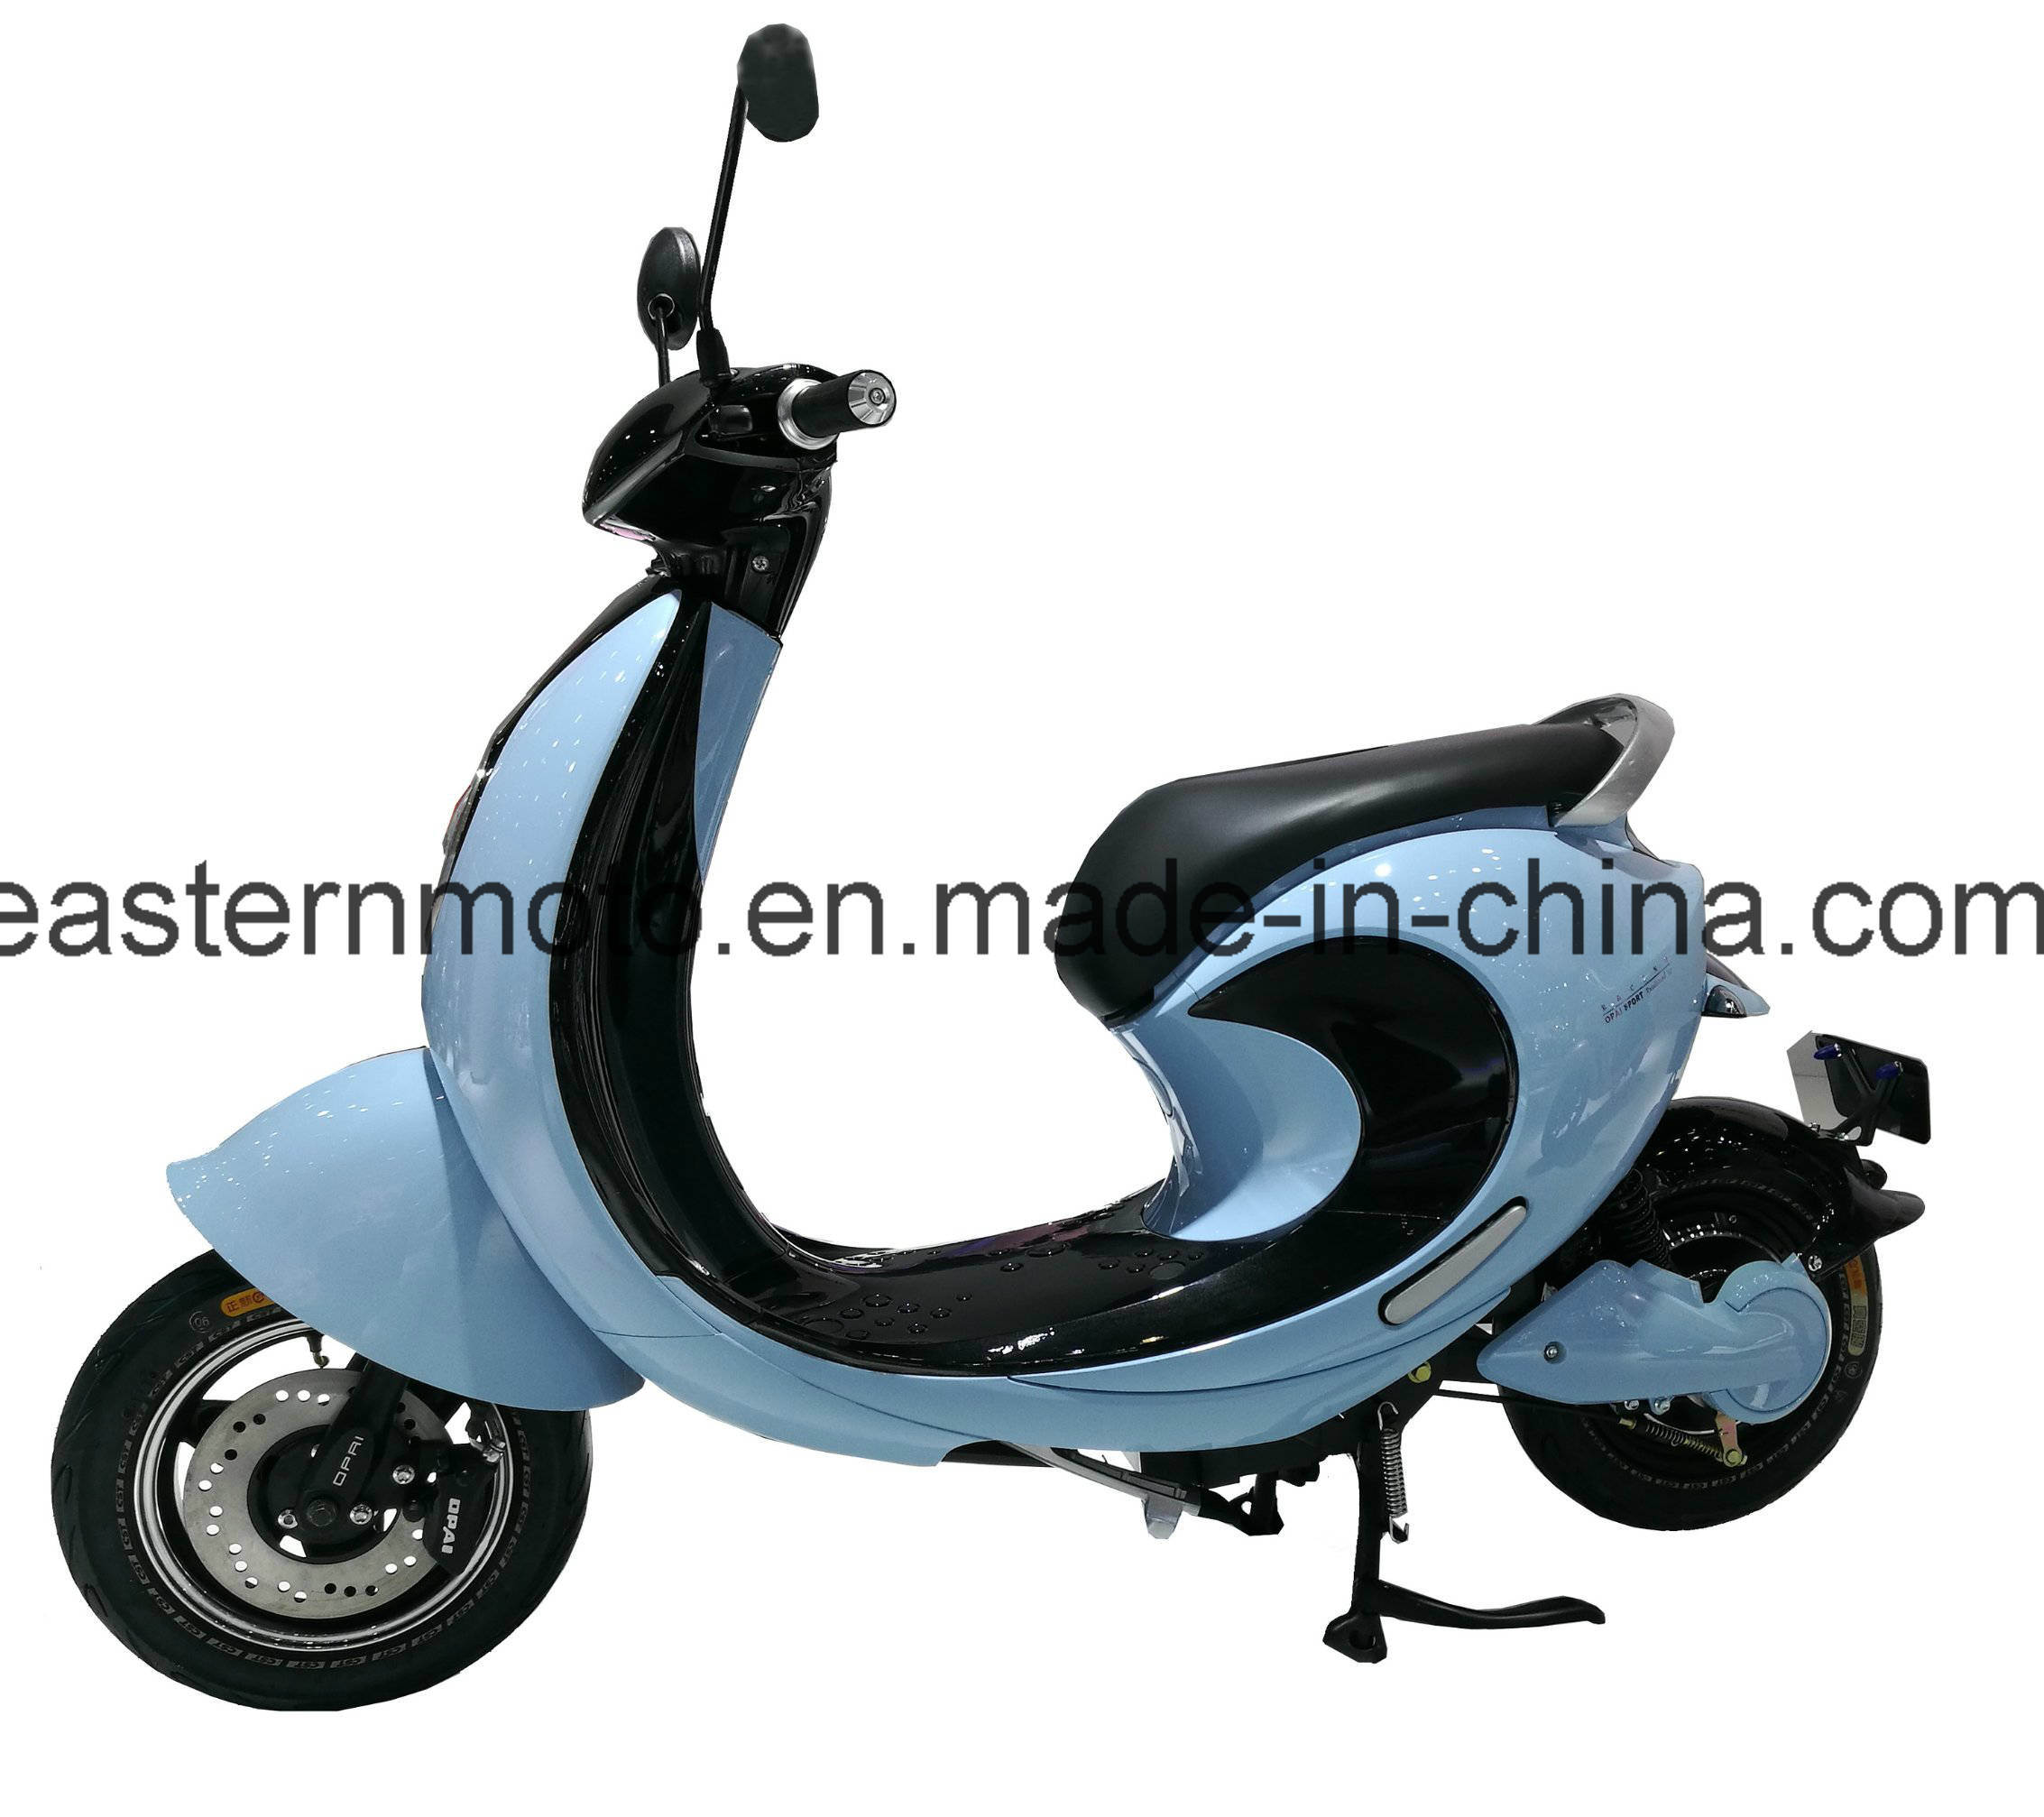 2017 Factory Sales Hot Selling E-Scooter Electric Motorcycle